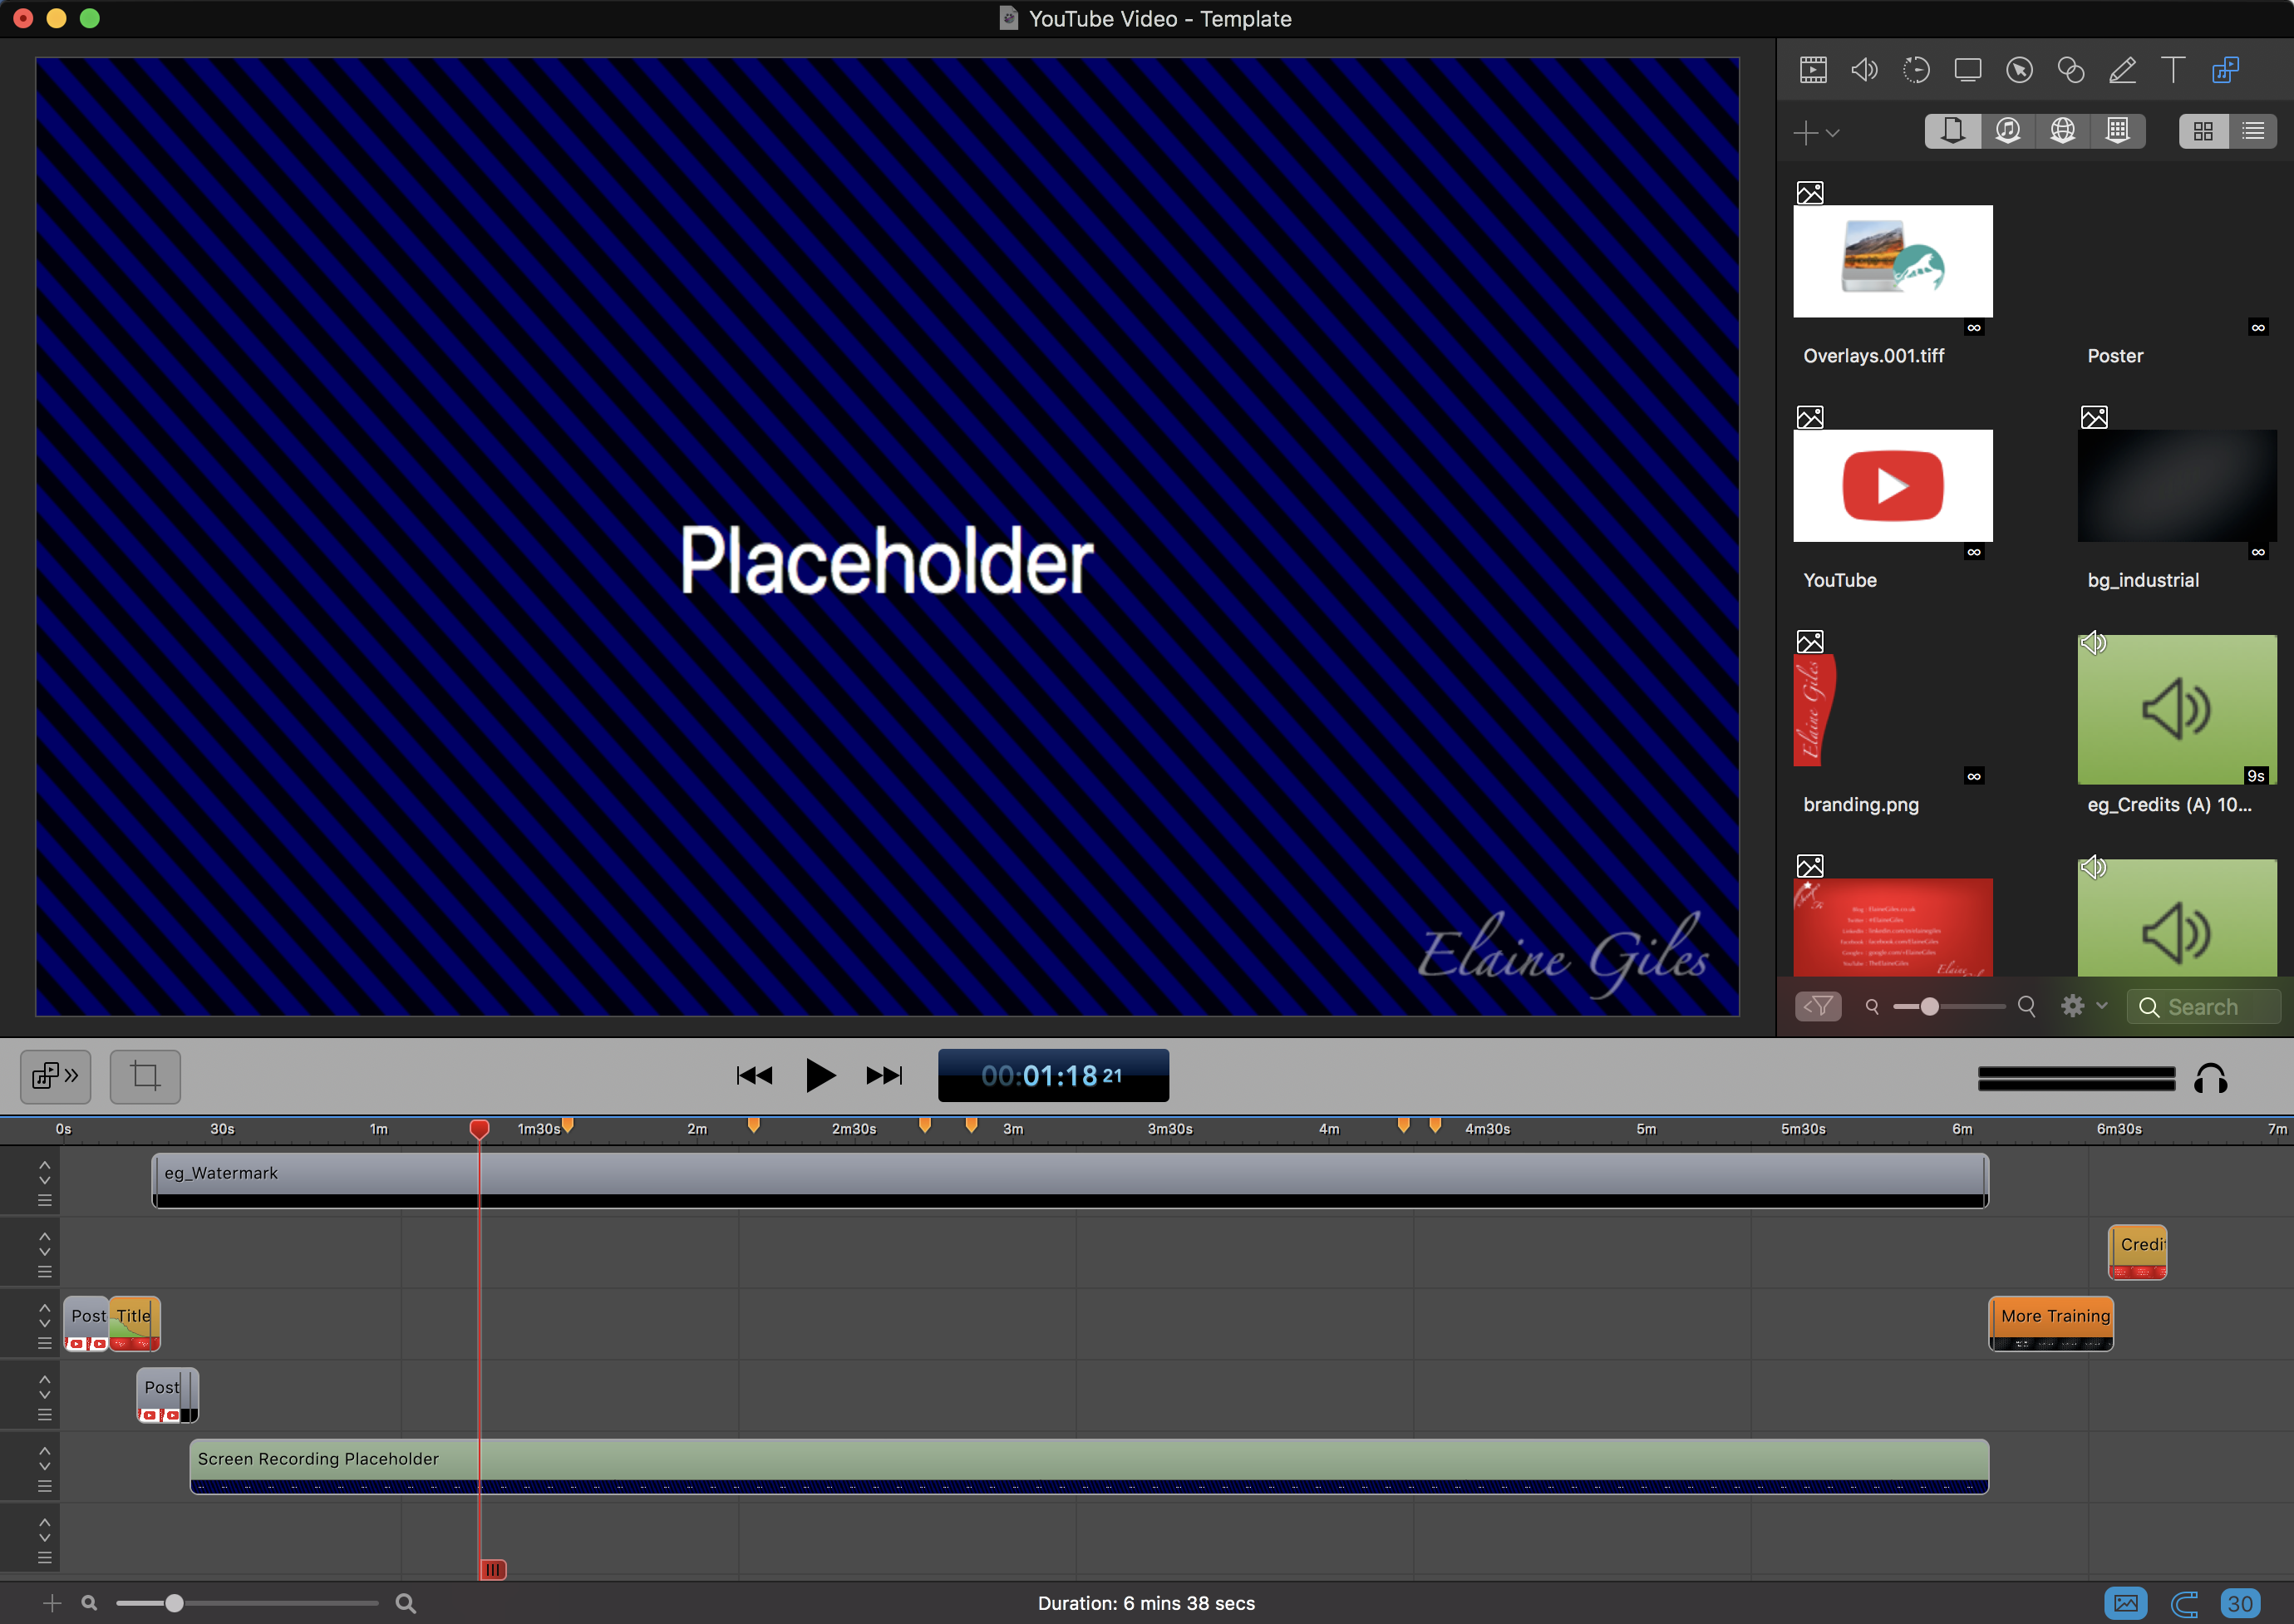 ScreenFlow 8 Placeholders